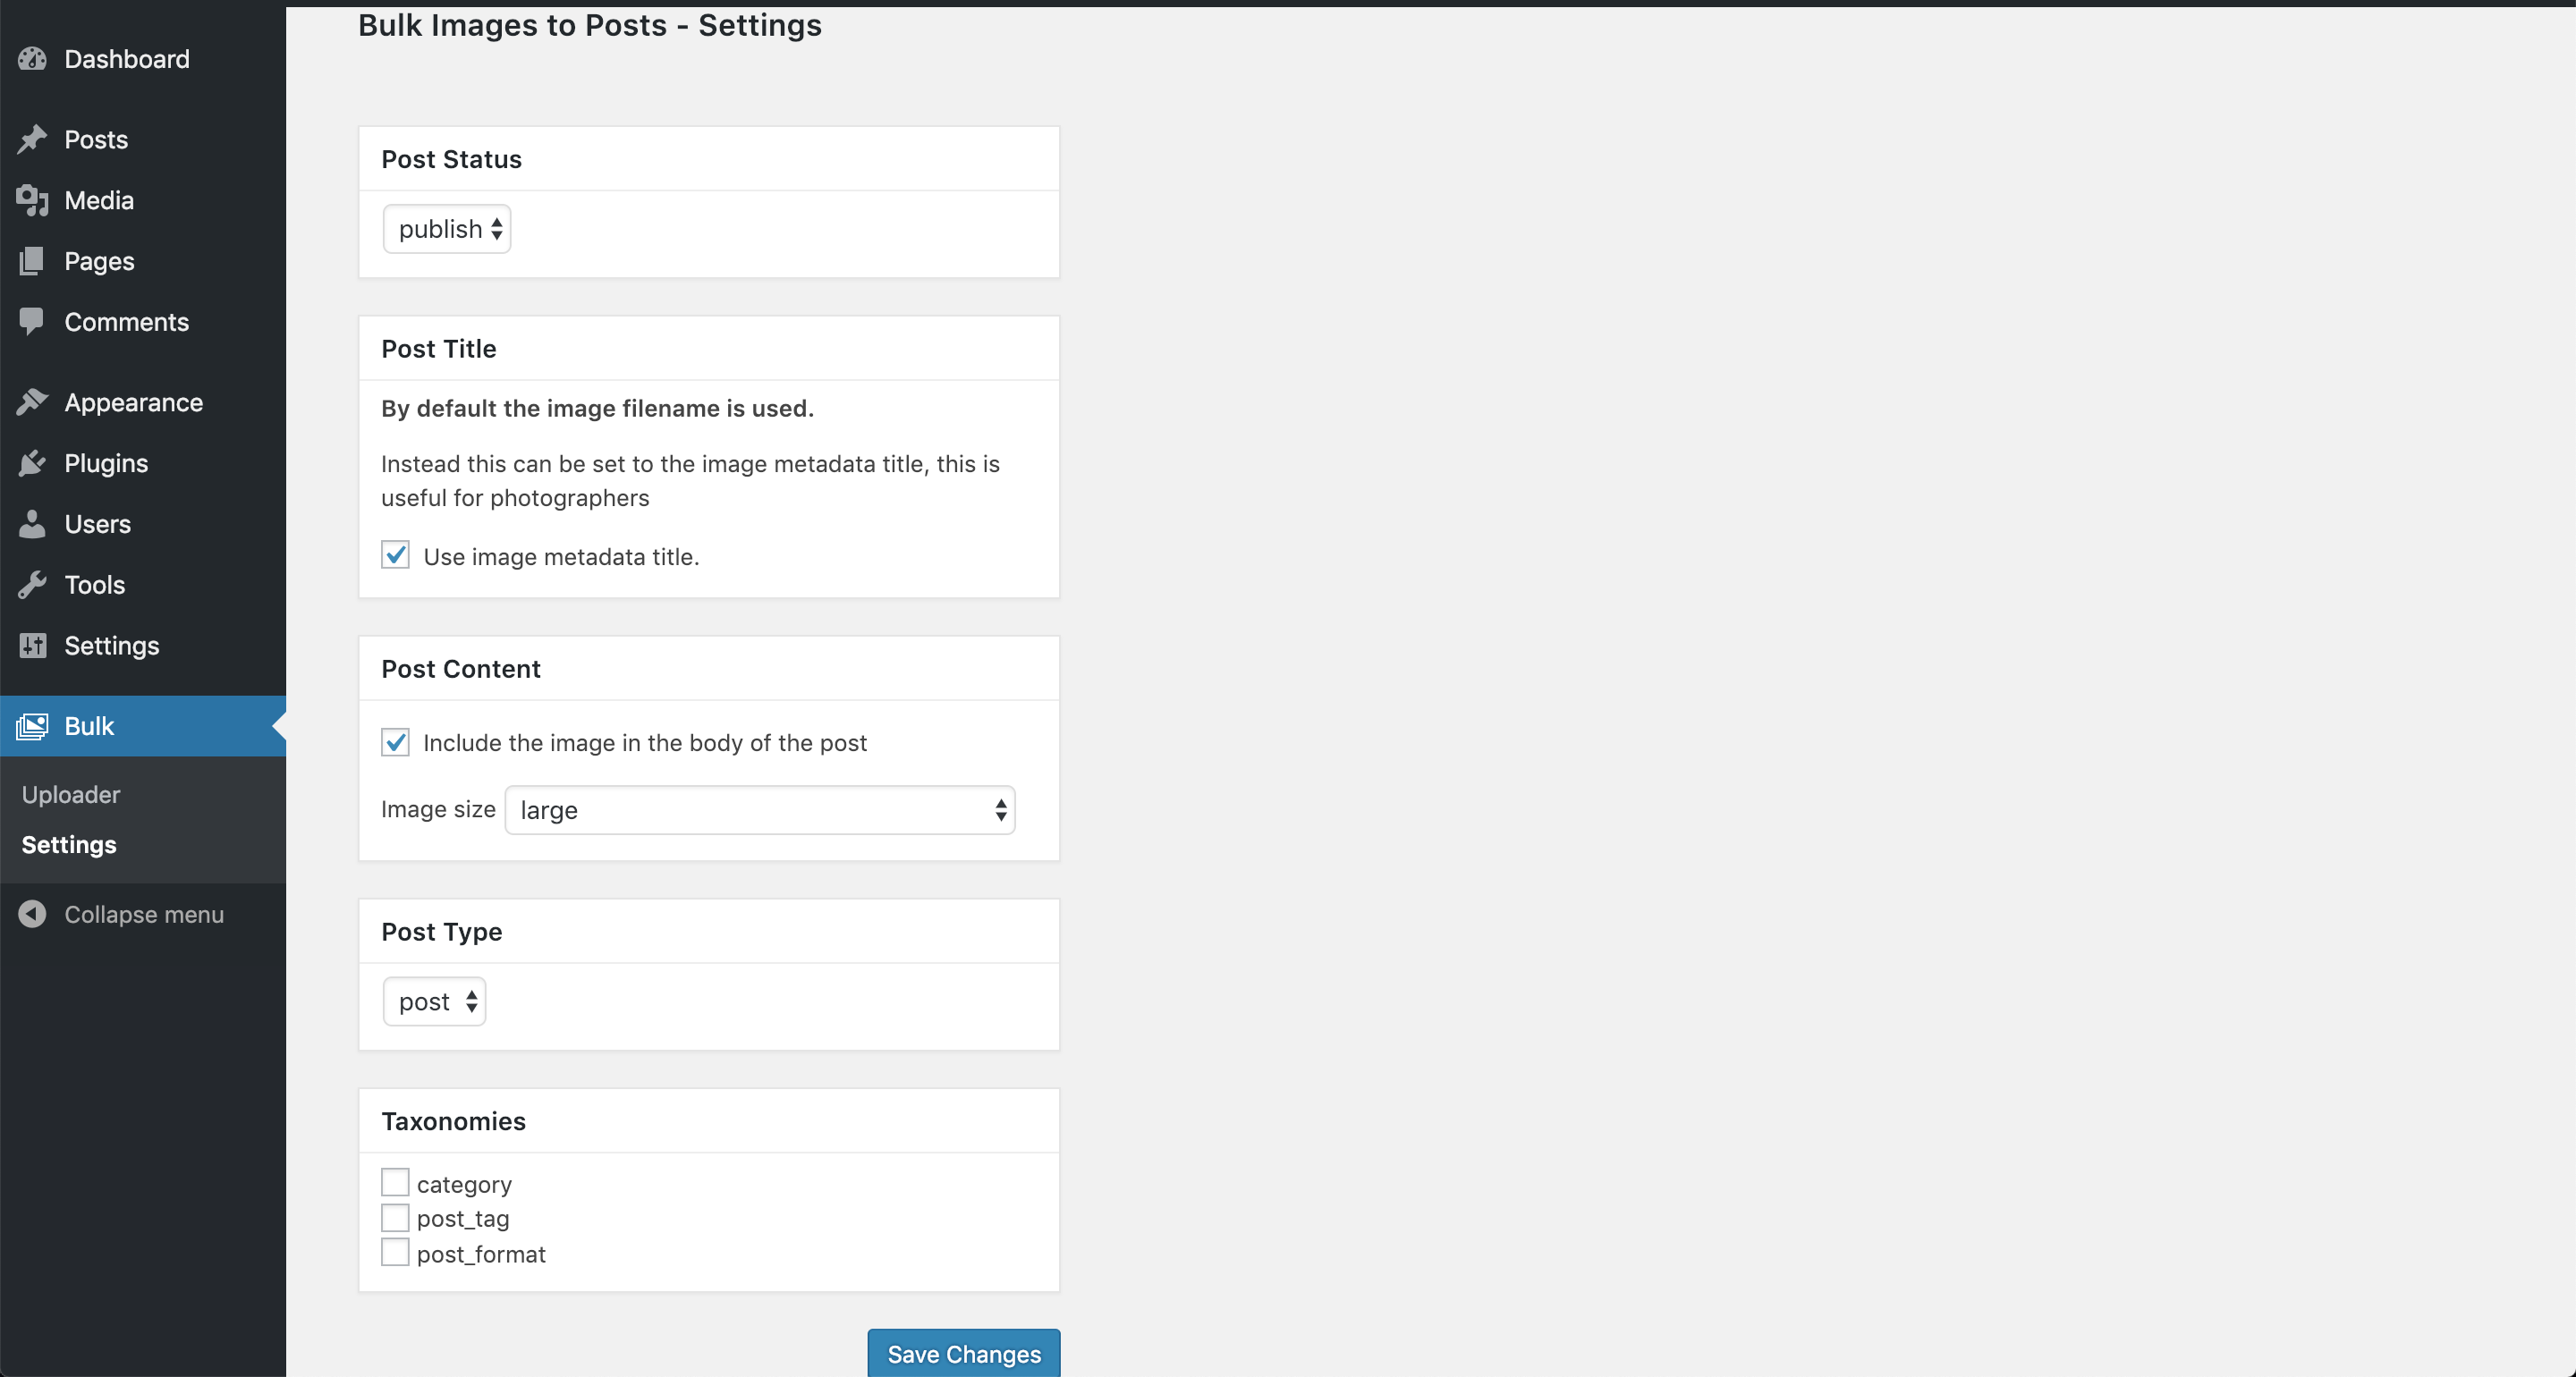 Preview of the settings page